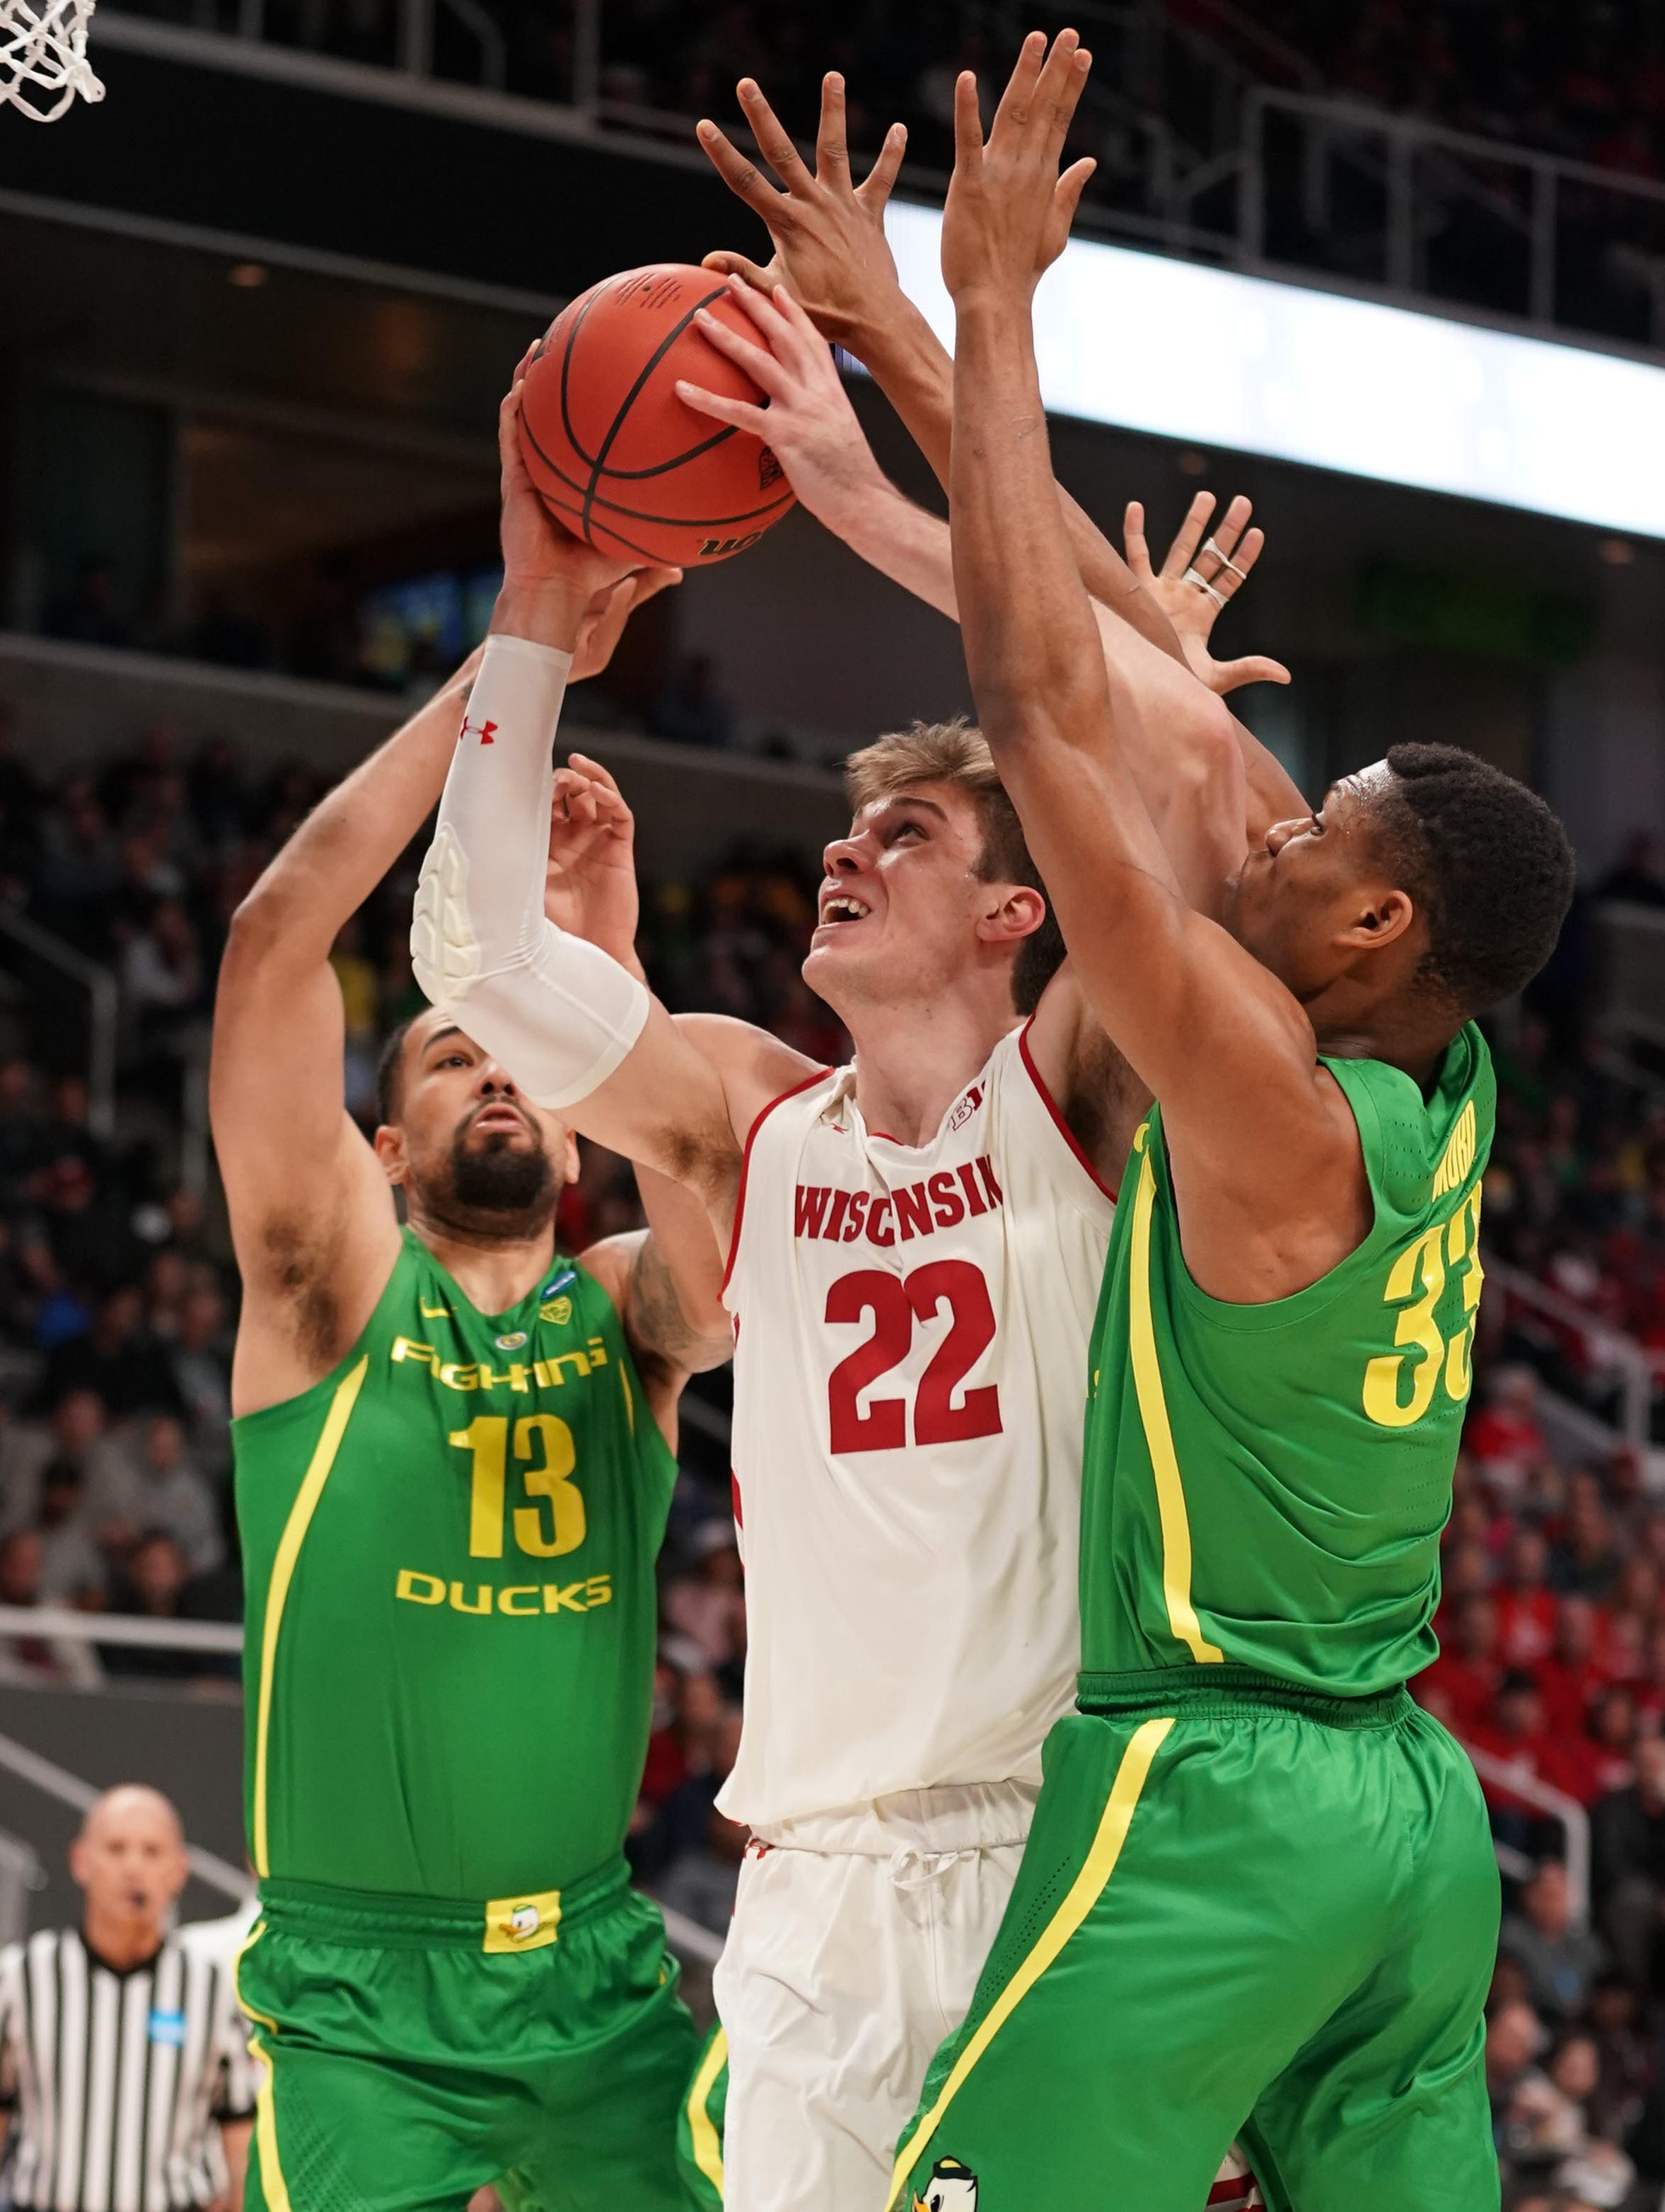 Wisconsin forward Ethan Happ tries to get a shot off while defended by Oregon's Paul White (13) and Francis Okoro (33).